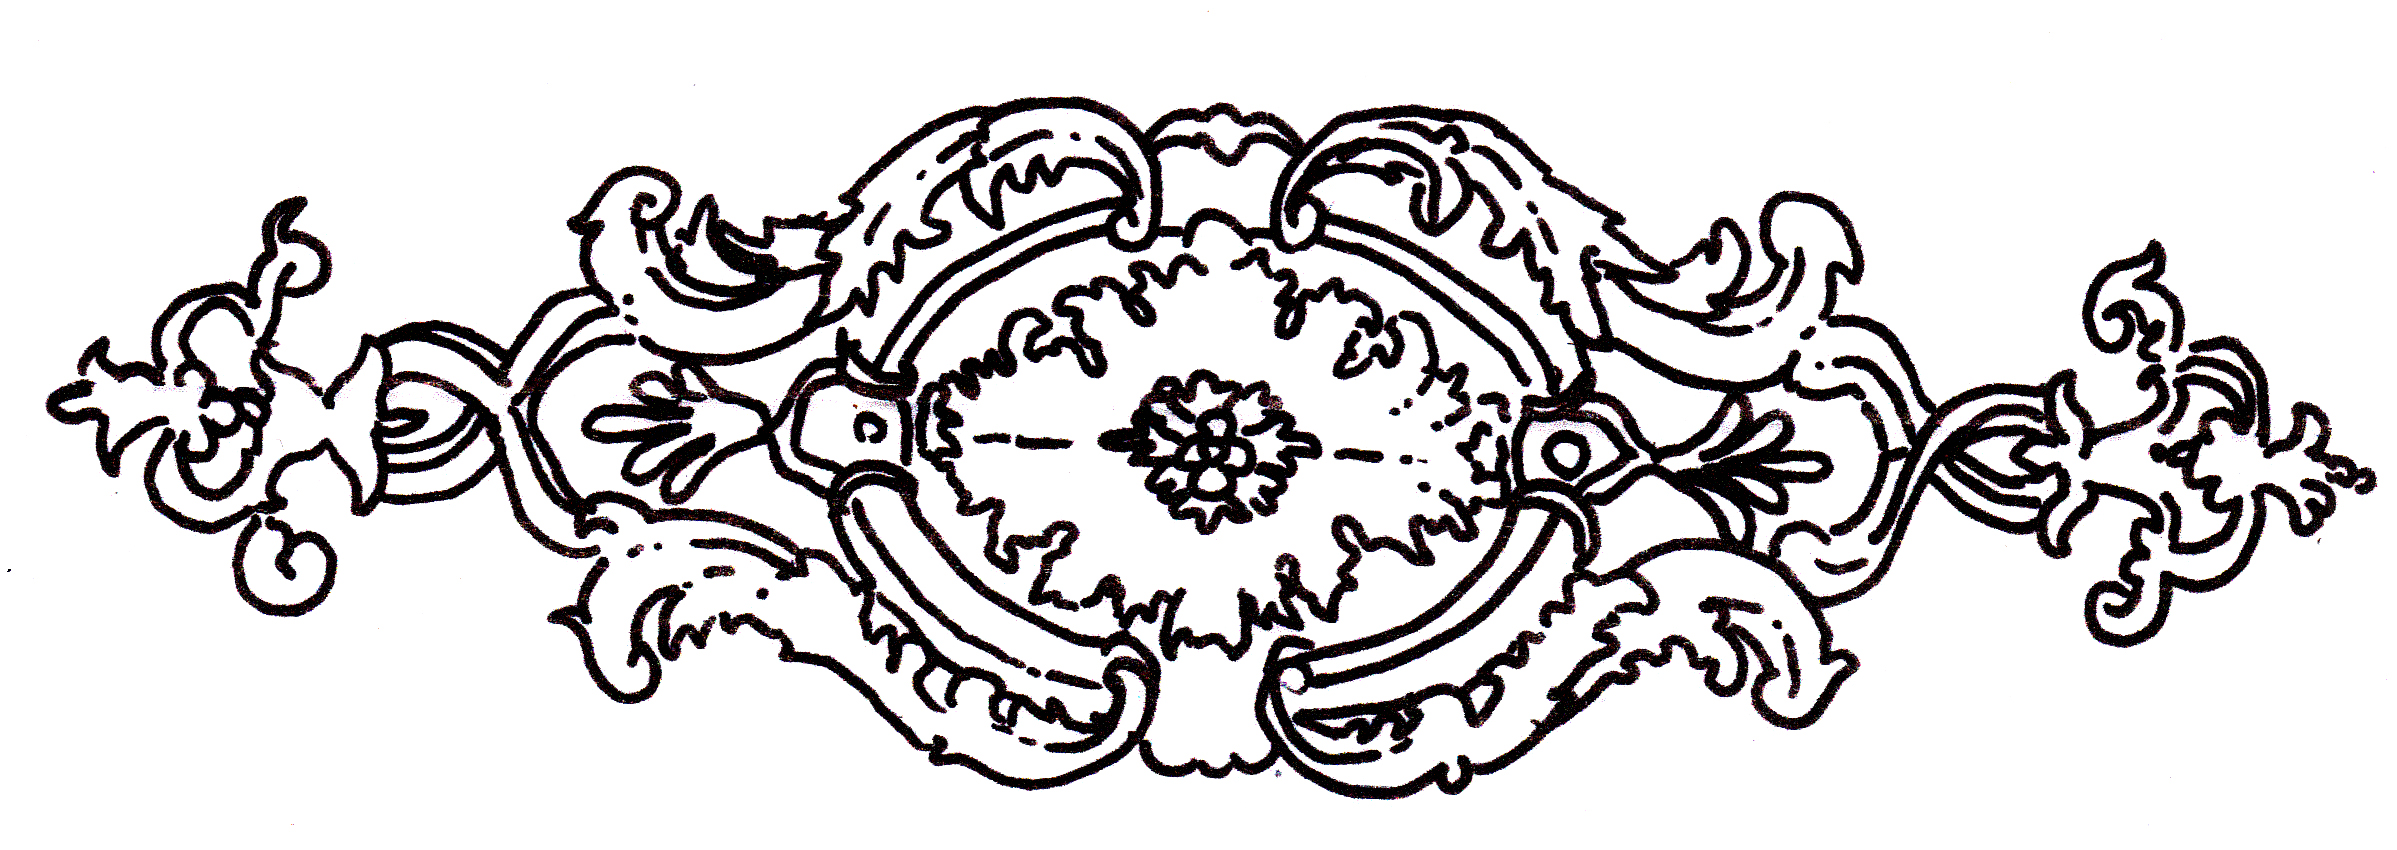 Wooden decorative scroll saw ornamental patterns pdf plans for Decorative scrollwork